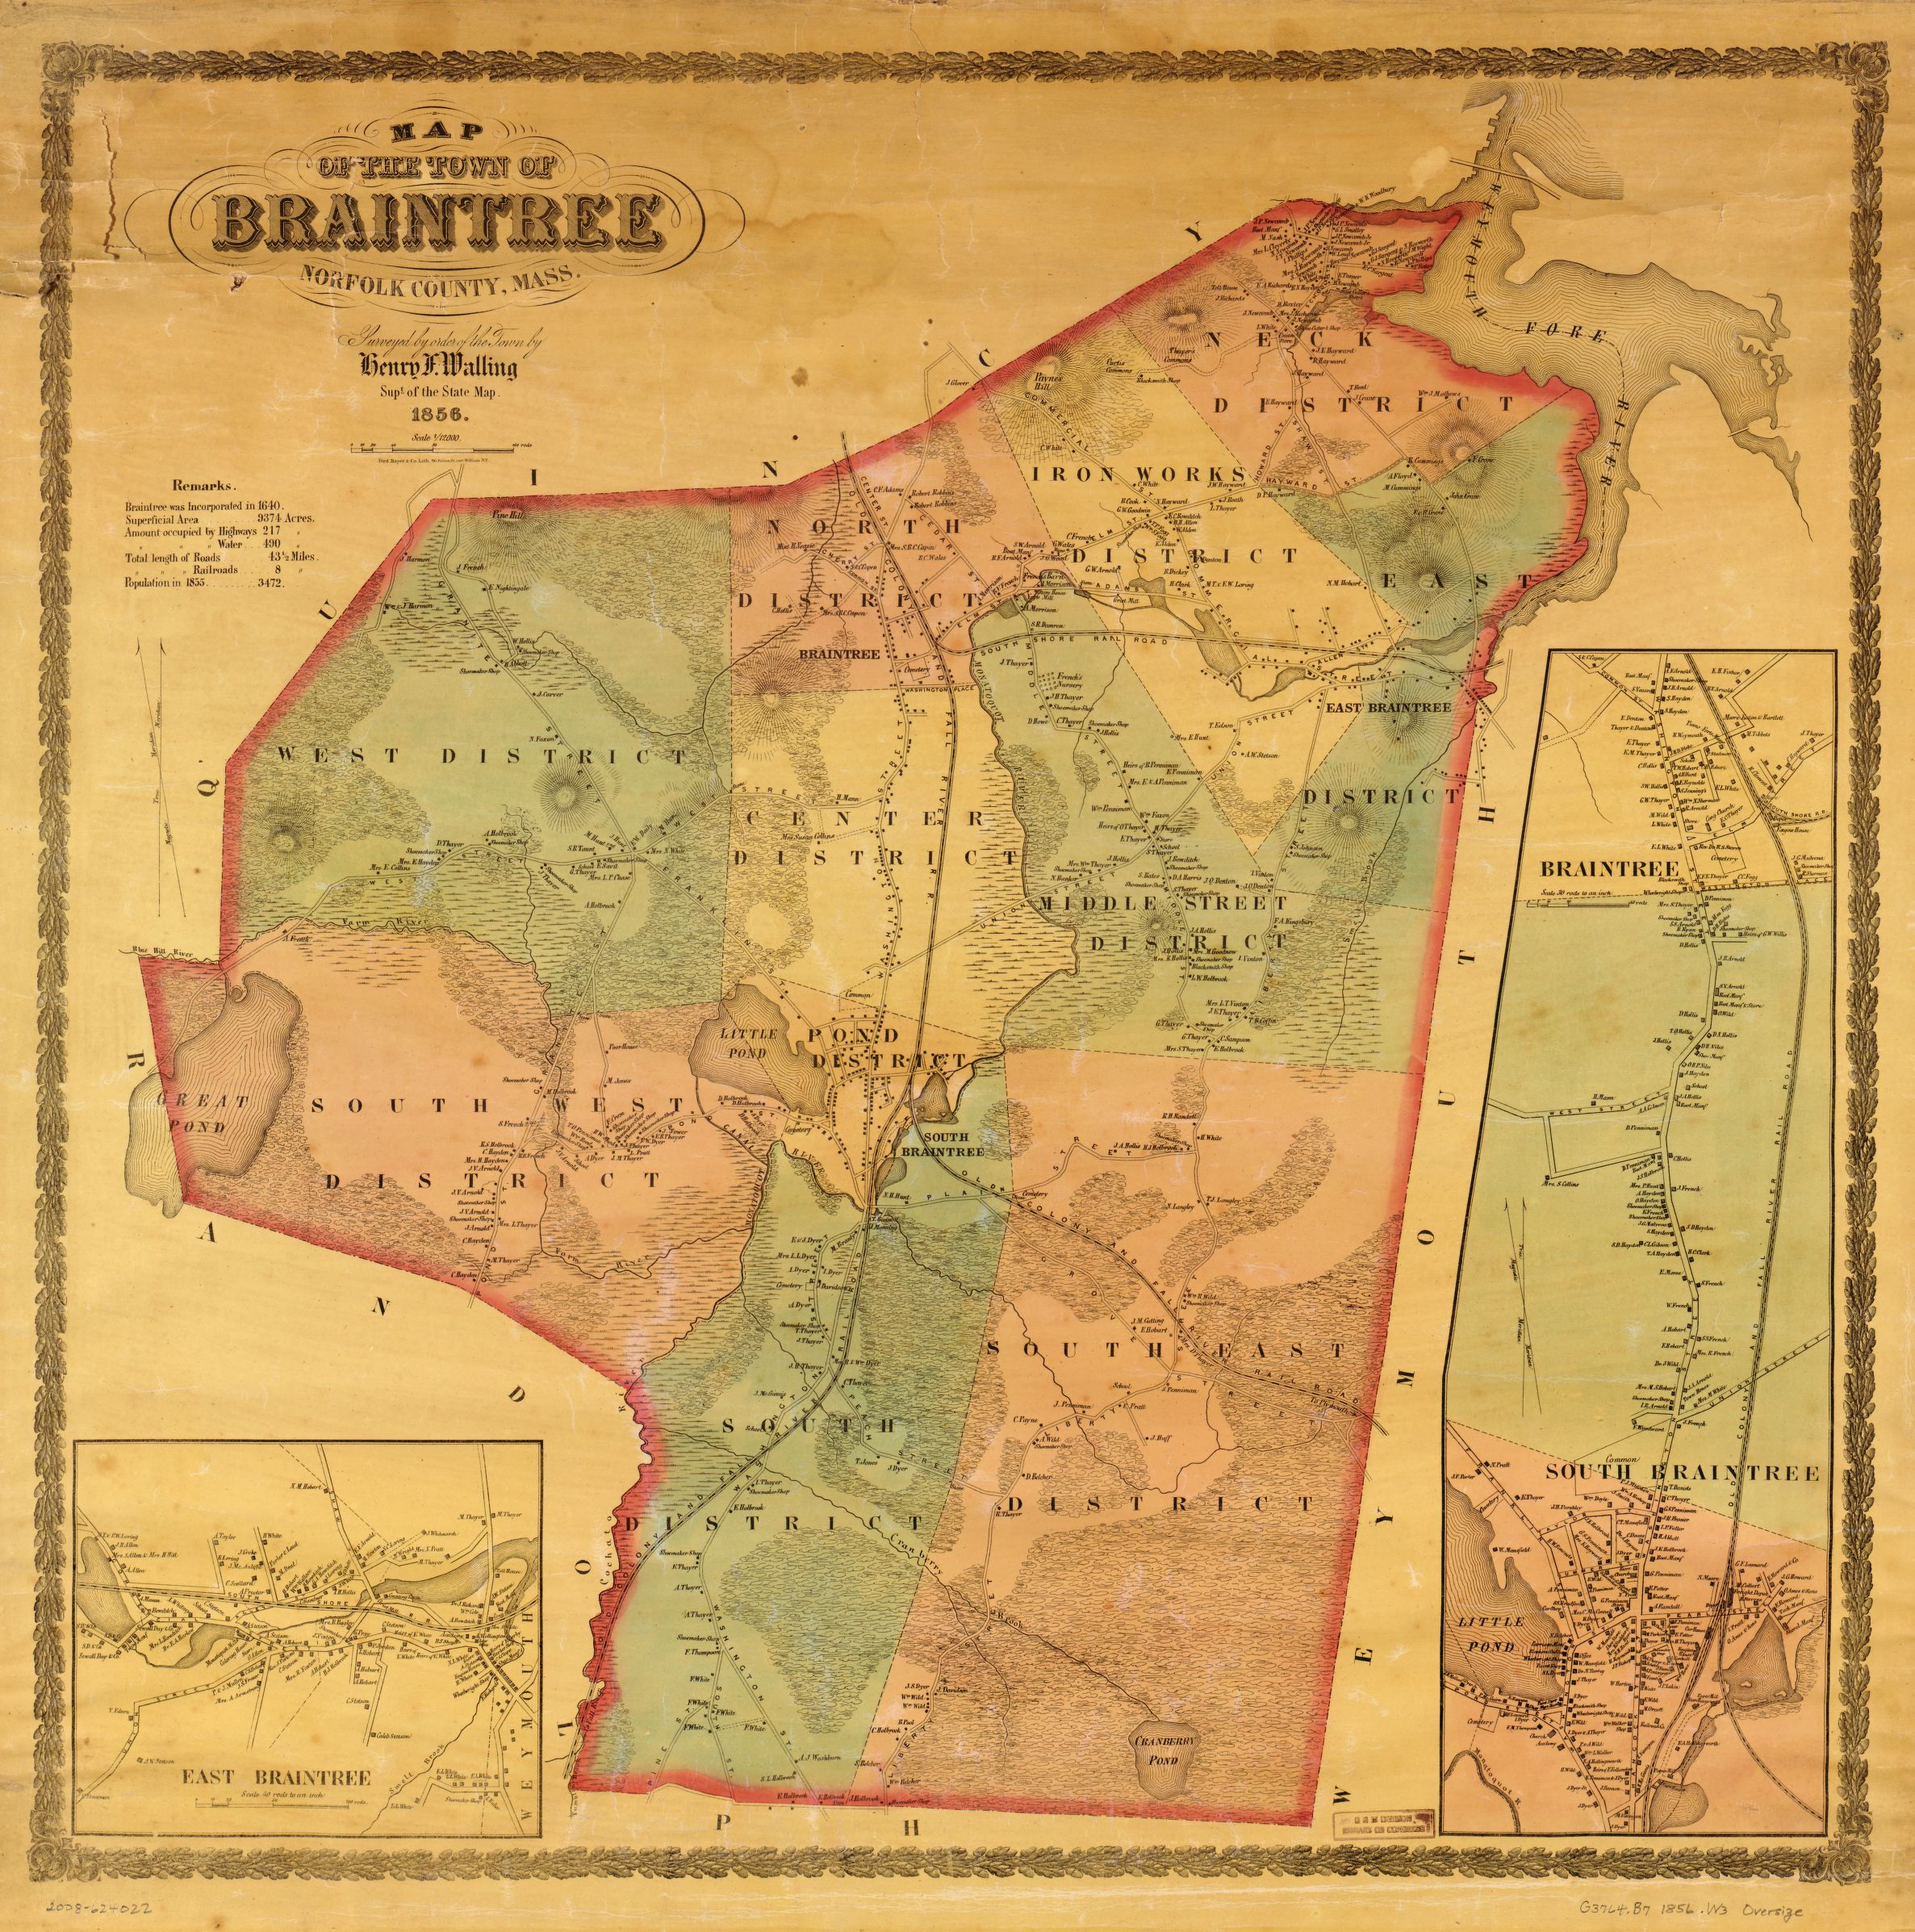 Map Of Braintree Ma File:Map of the town of Braintree, Norfolk County, Massachusetts